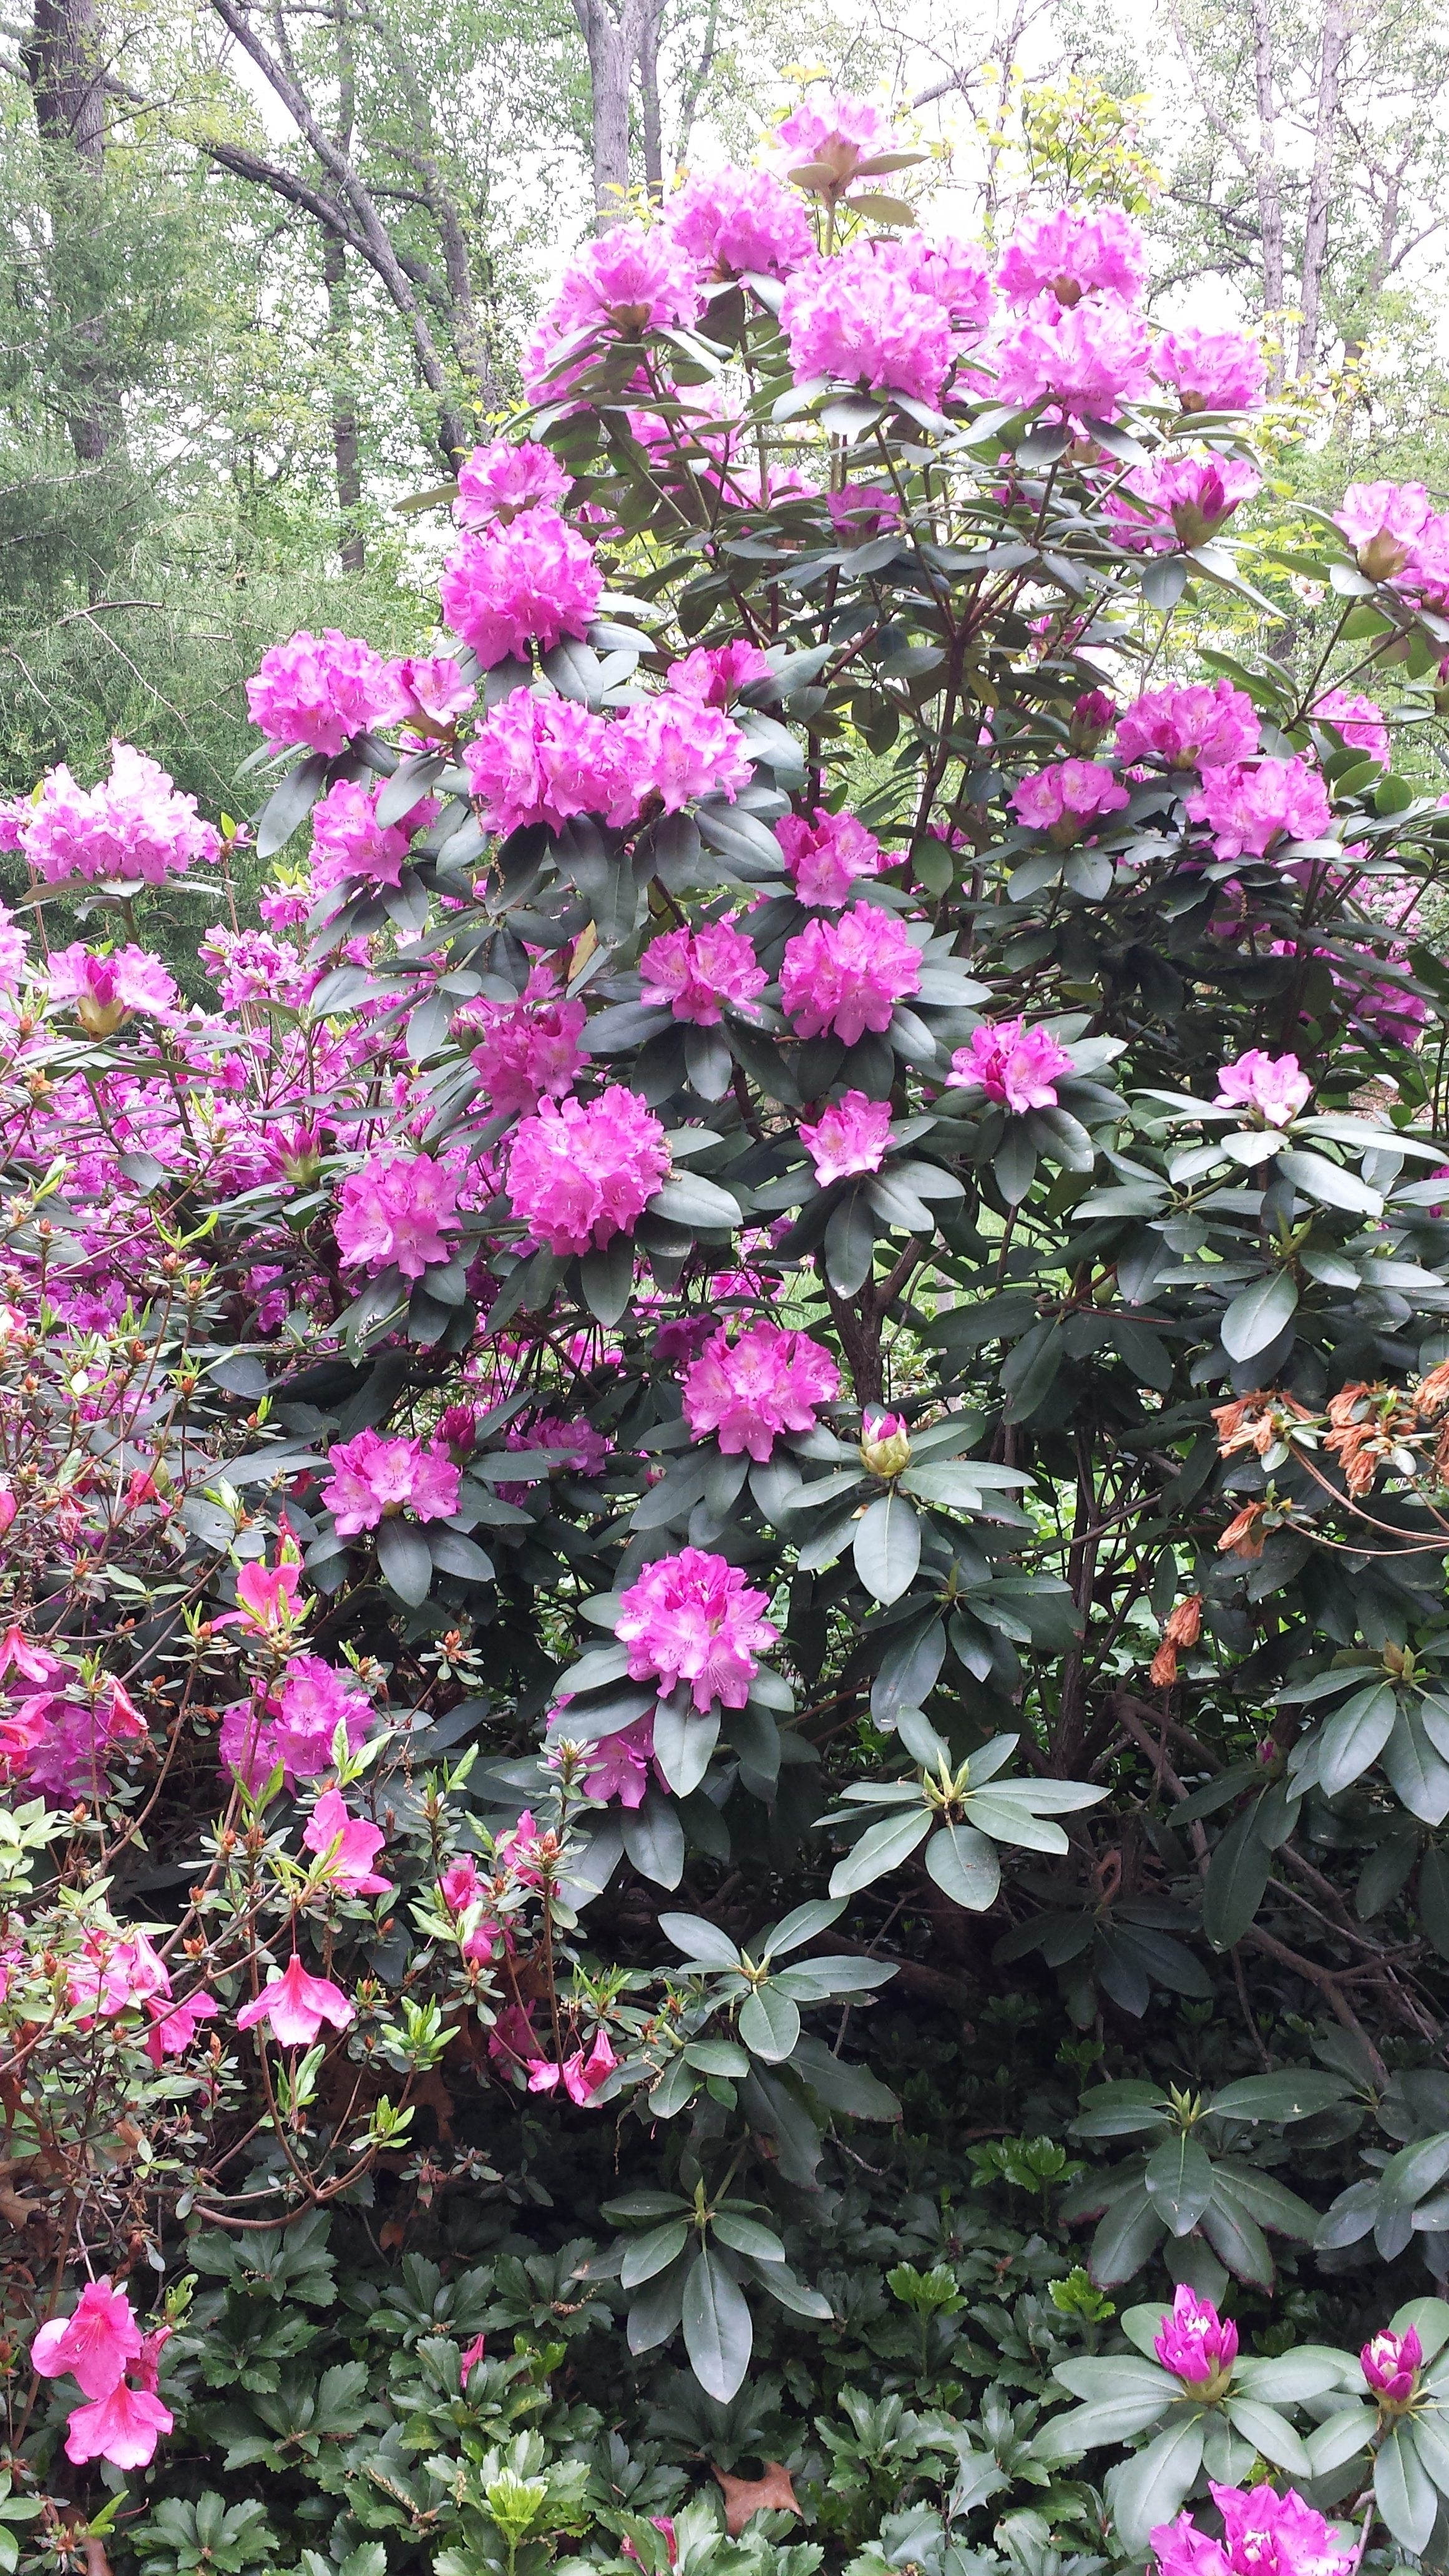 This rhododendron was stricken with borers. I treated it and look how gorgeous it became!